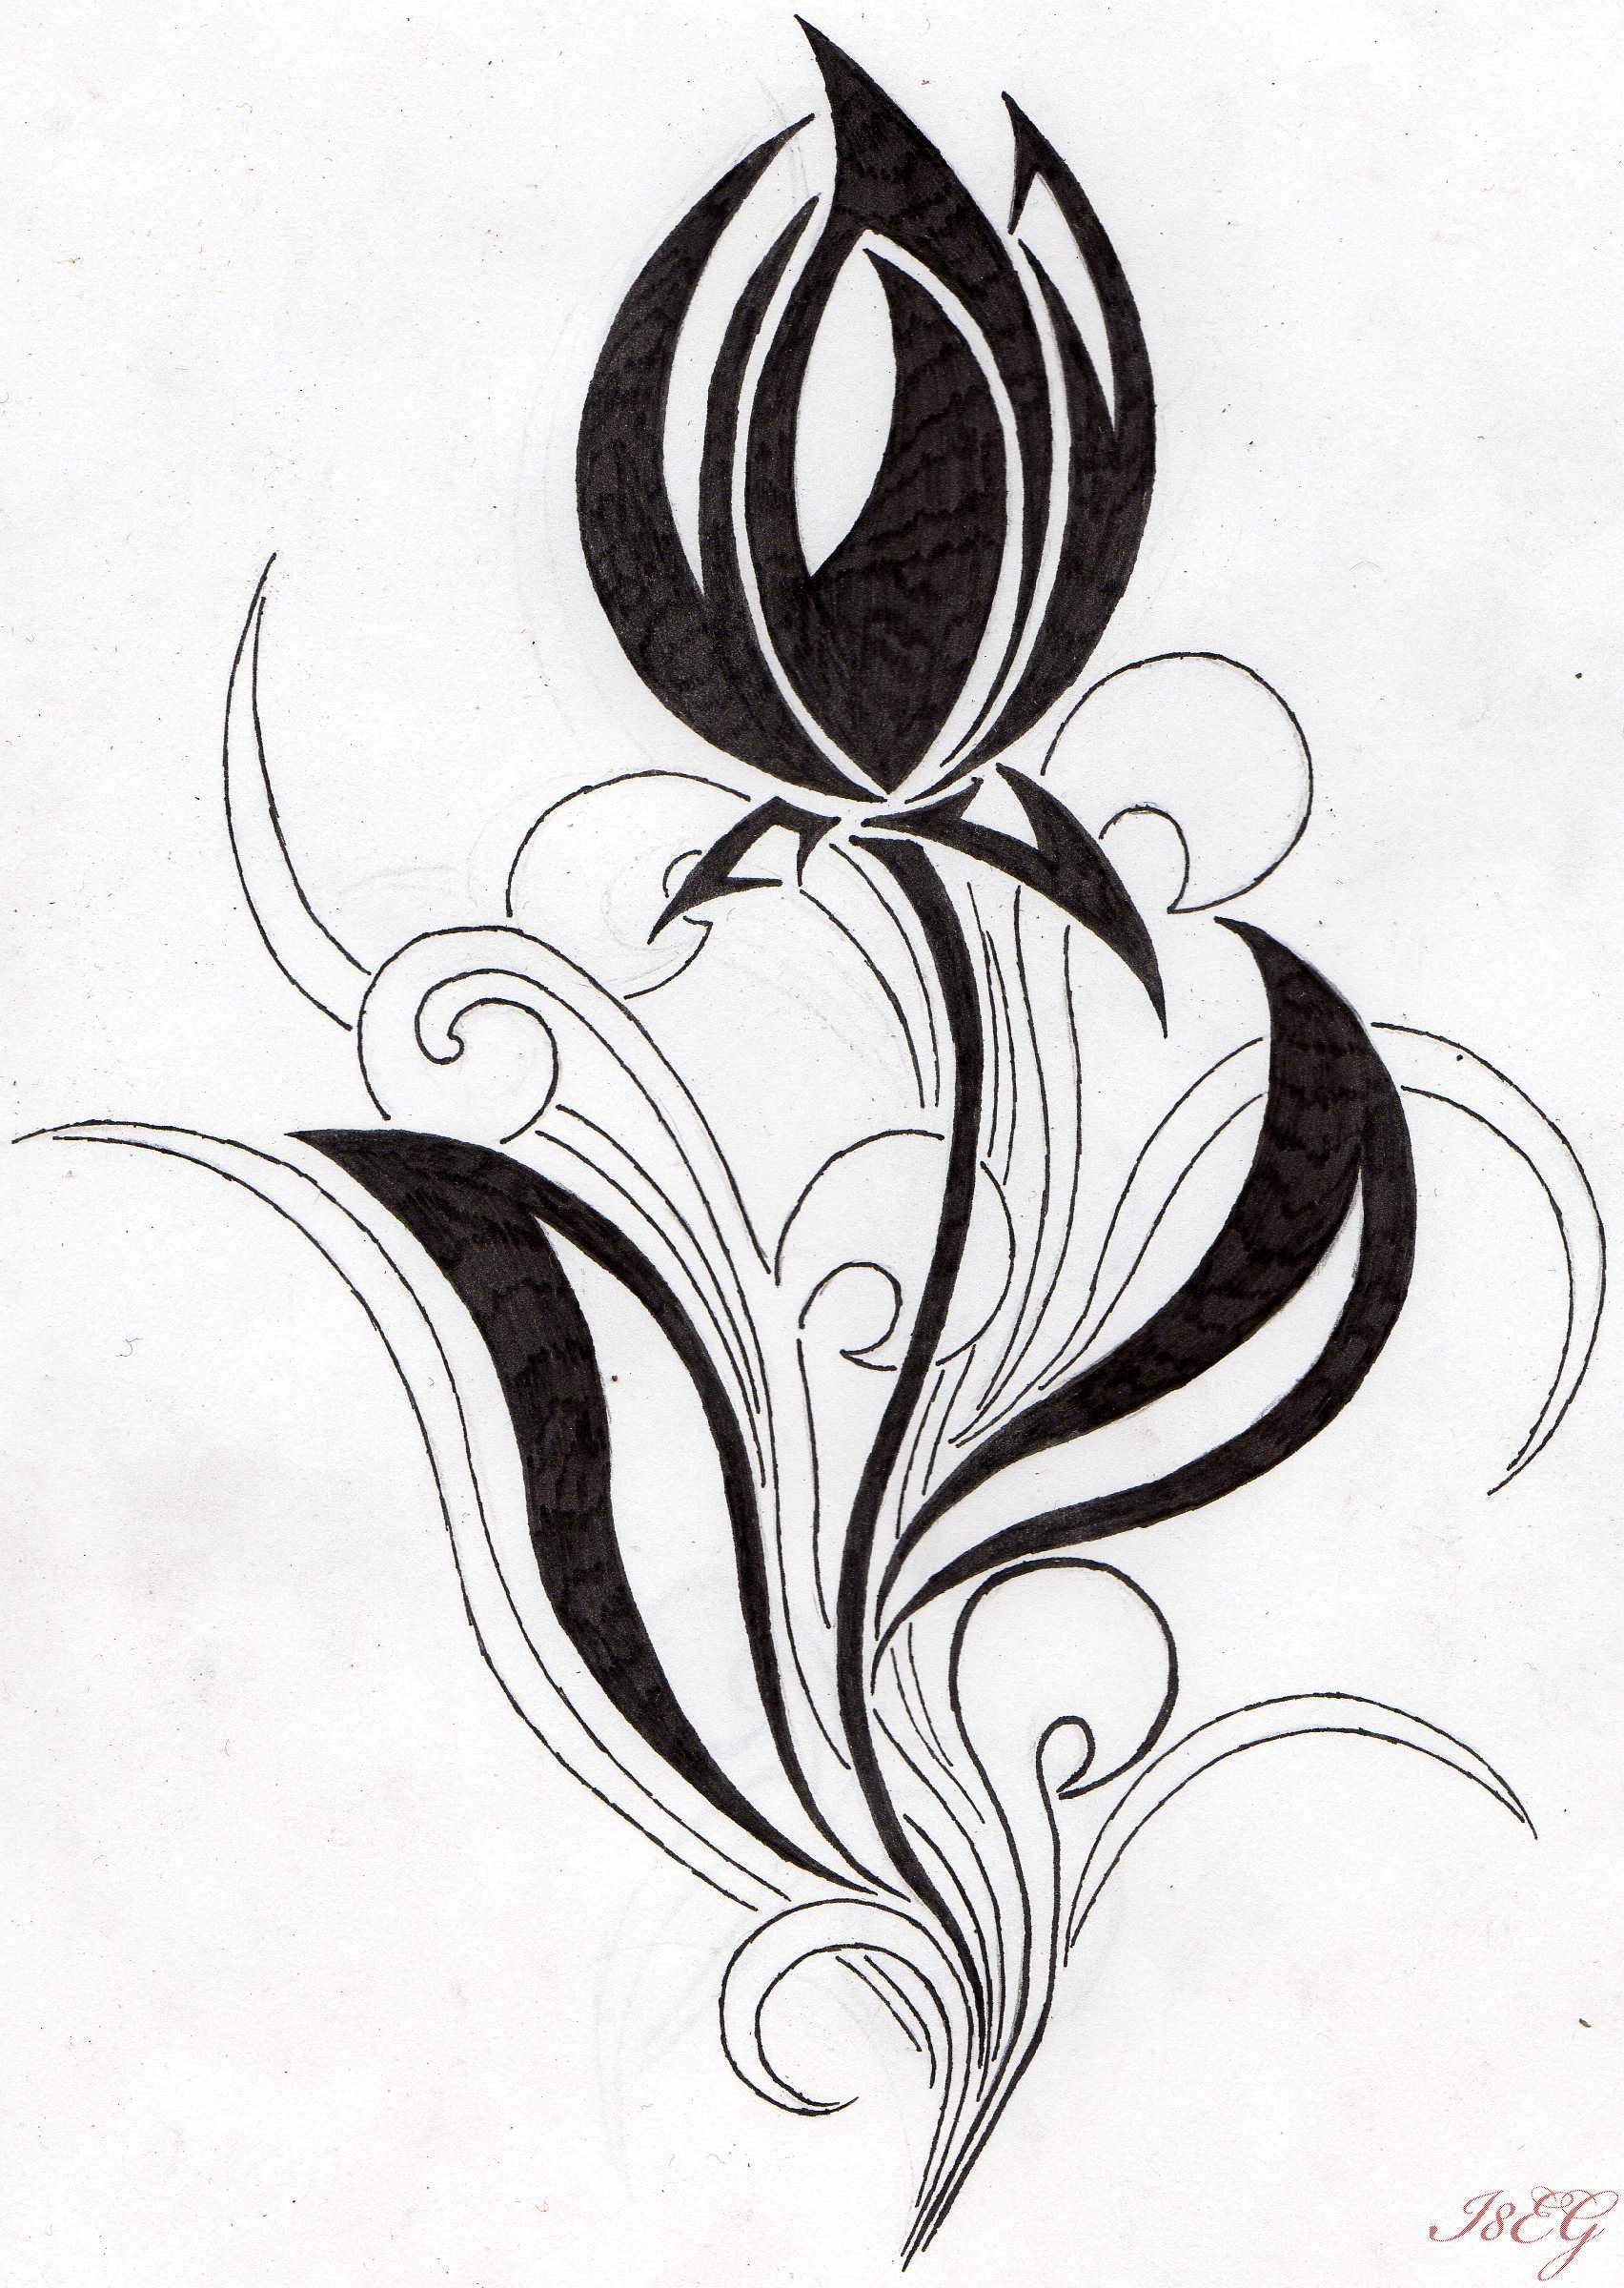 Lily flower tattoo ideas images for tatouage lily flower tattoo ideas throughout white lily flower tattoo black lily flower tattoo sample photo izmirmasajfo